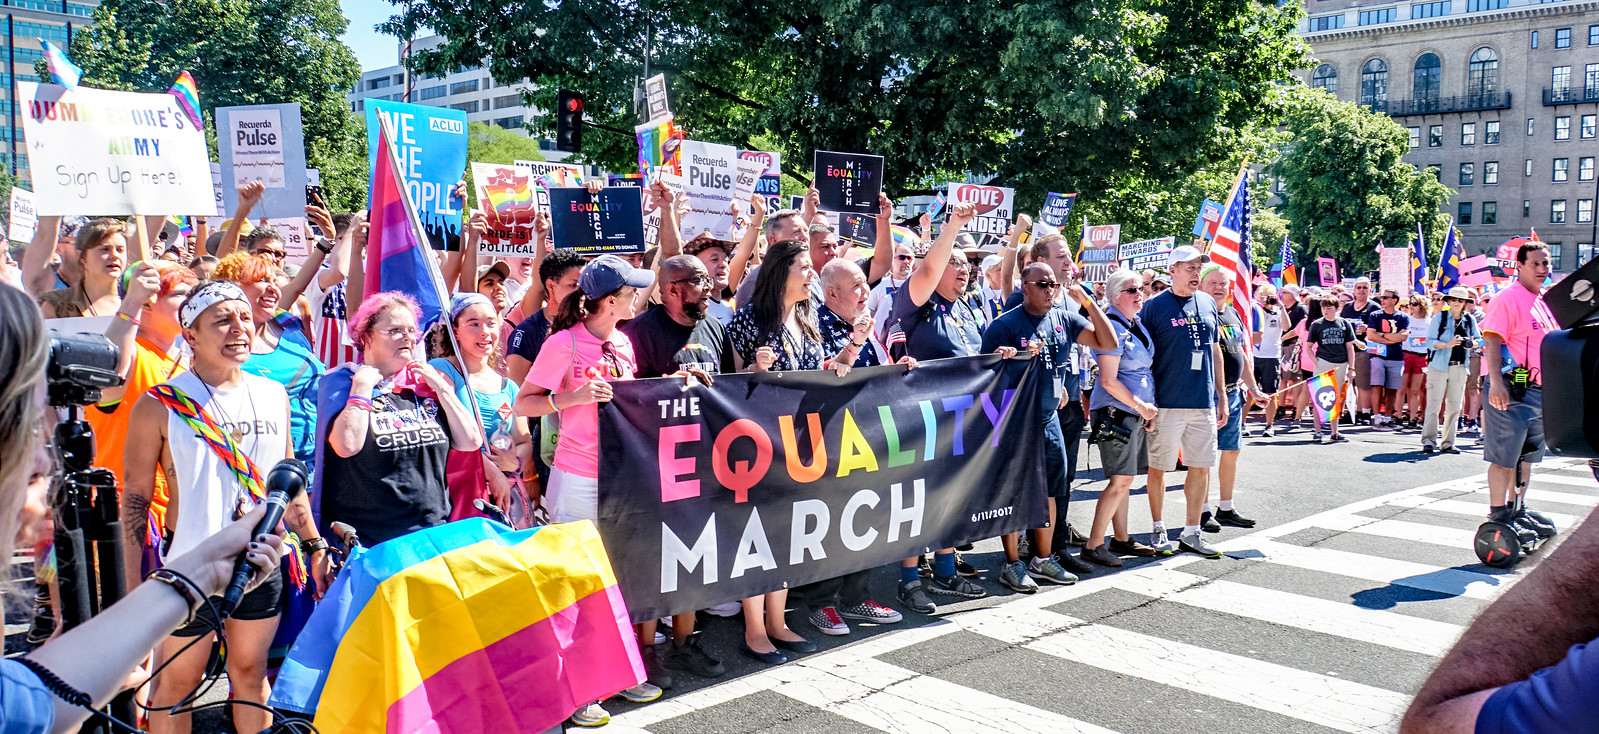 2017.06.11 Equality March 2017, Washington, DC USA 6513